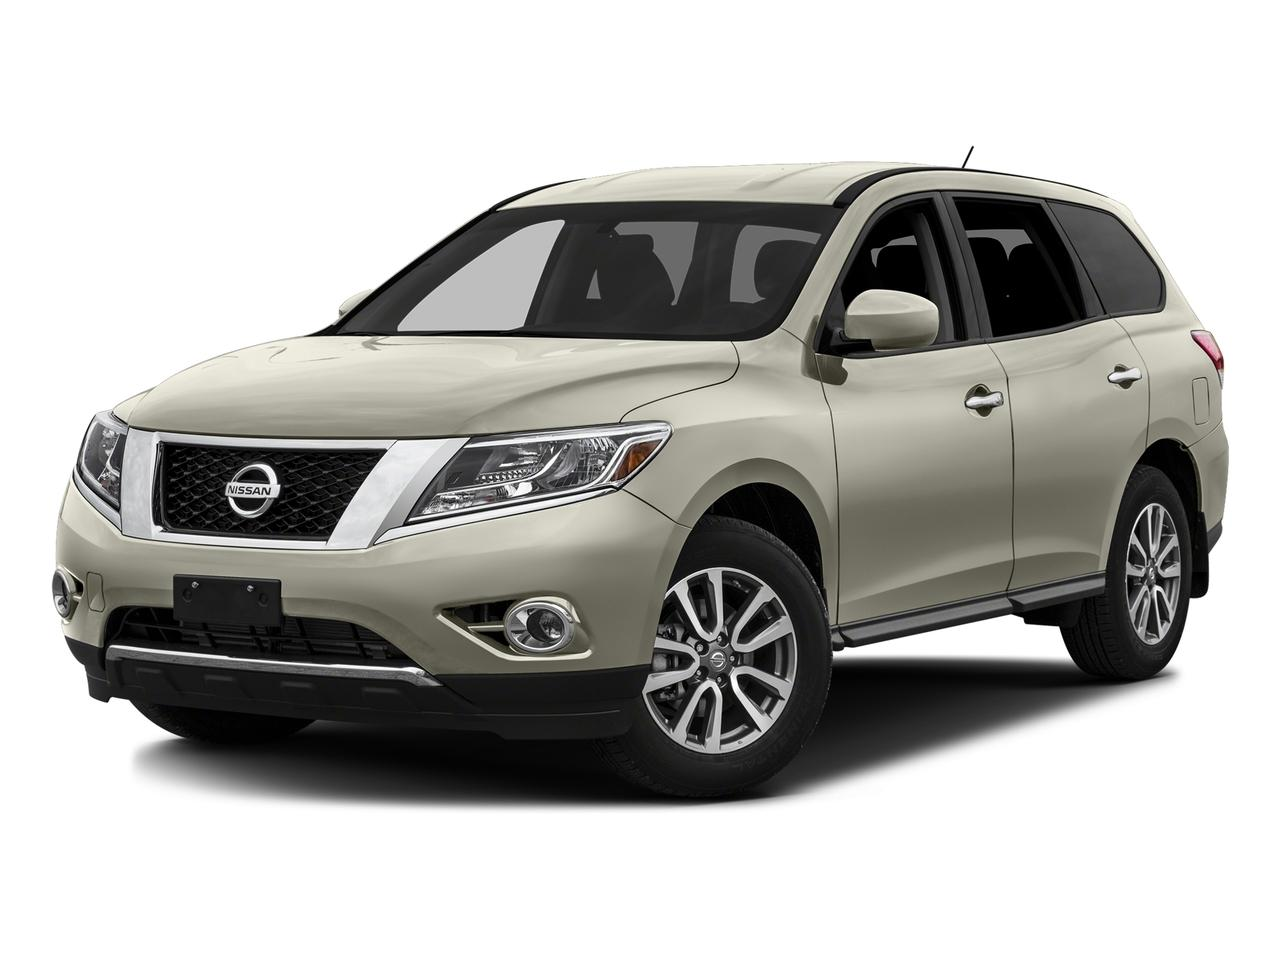 2016 Nissan Pathfinder Vehicle Photo in Quakertown, PA 18951